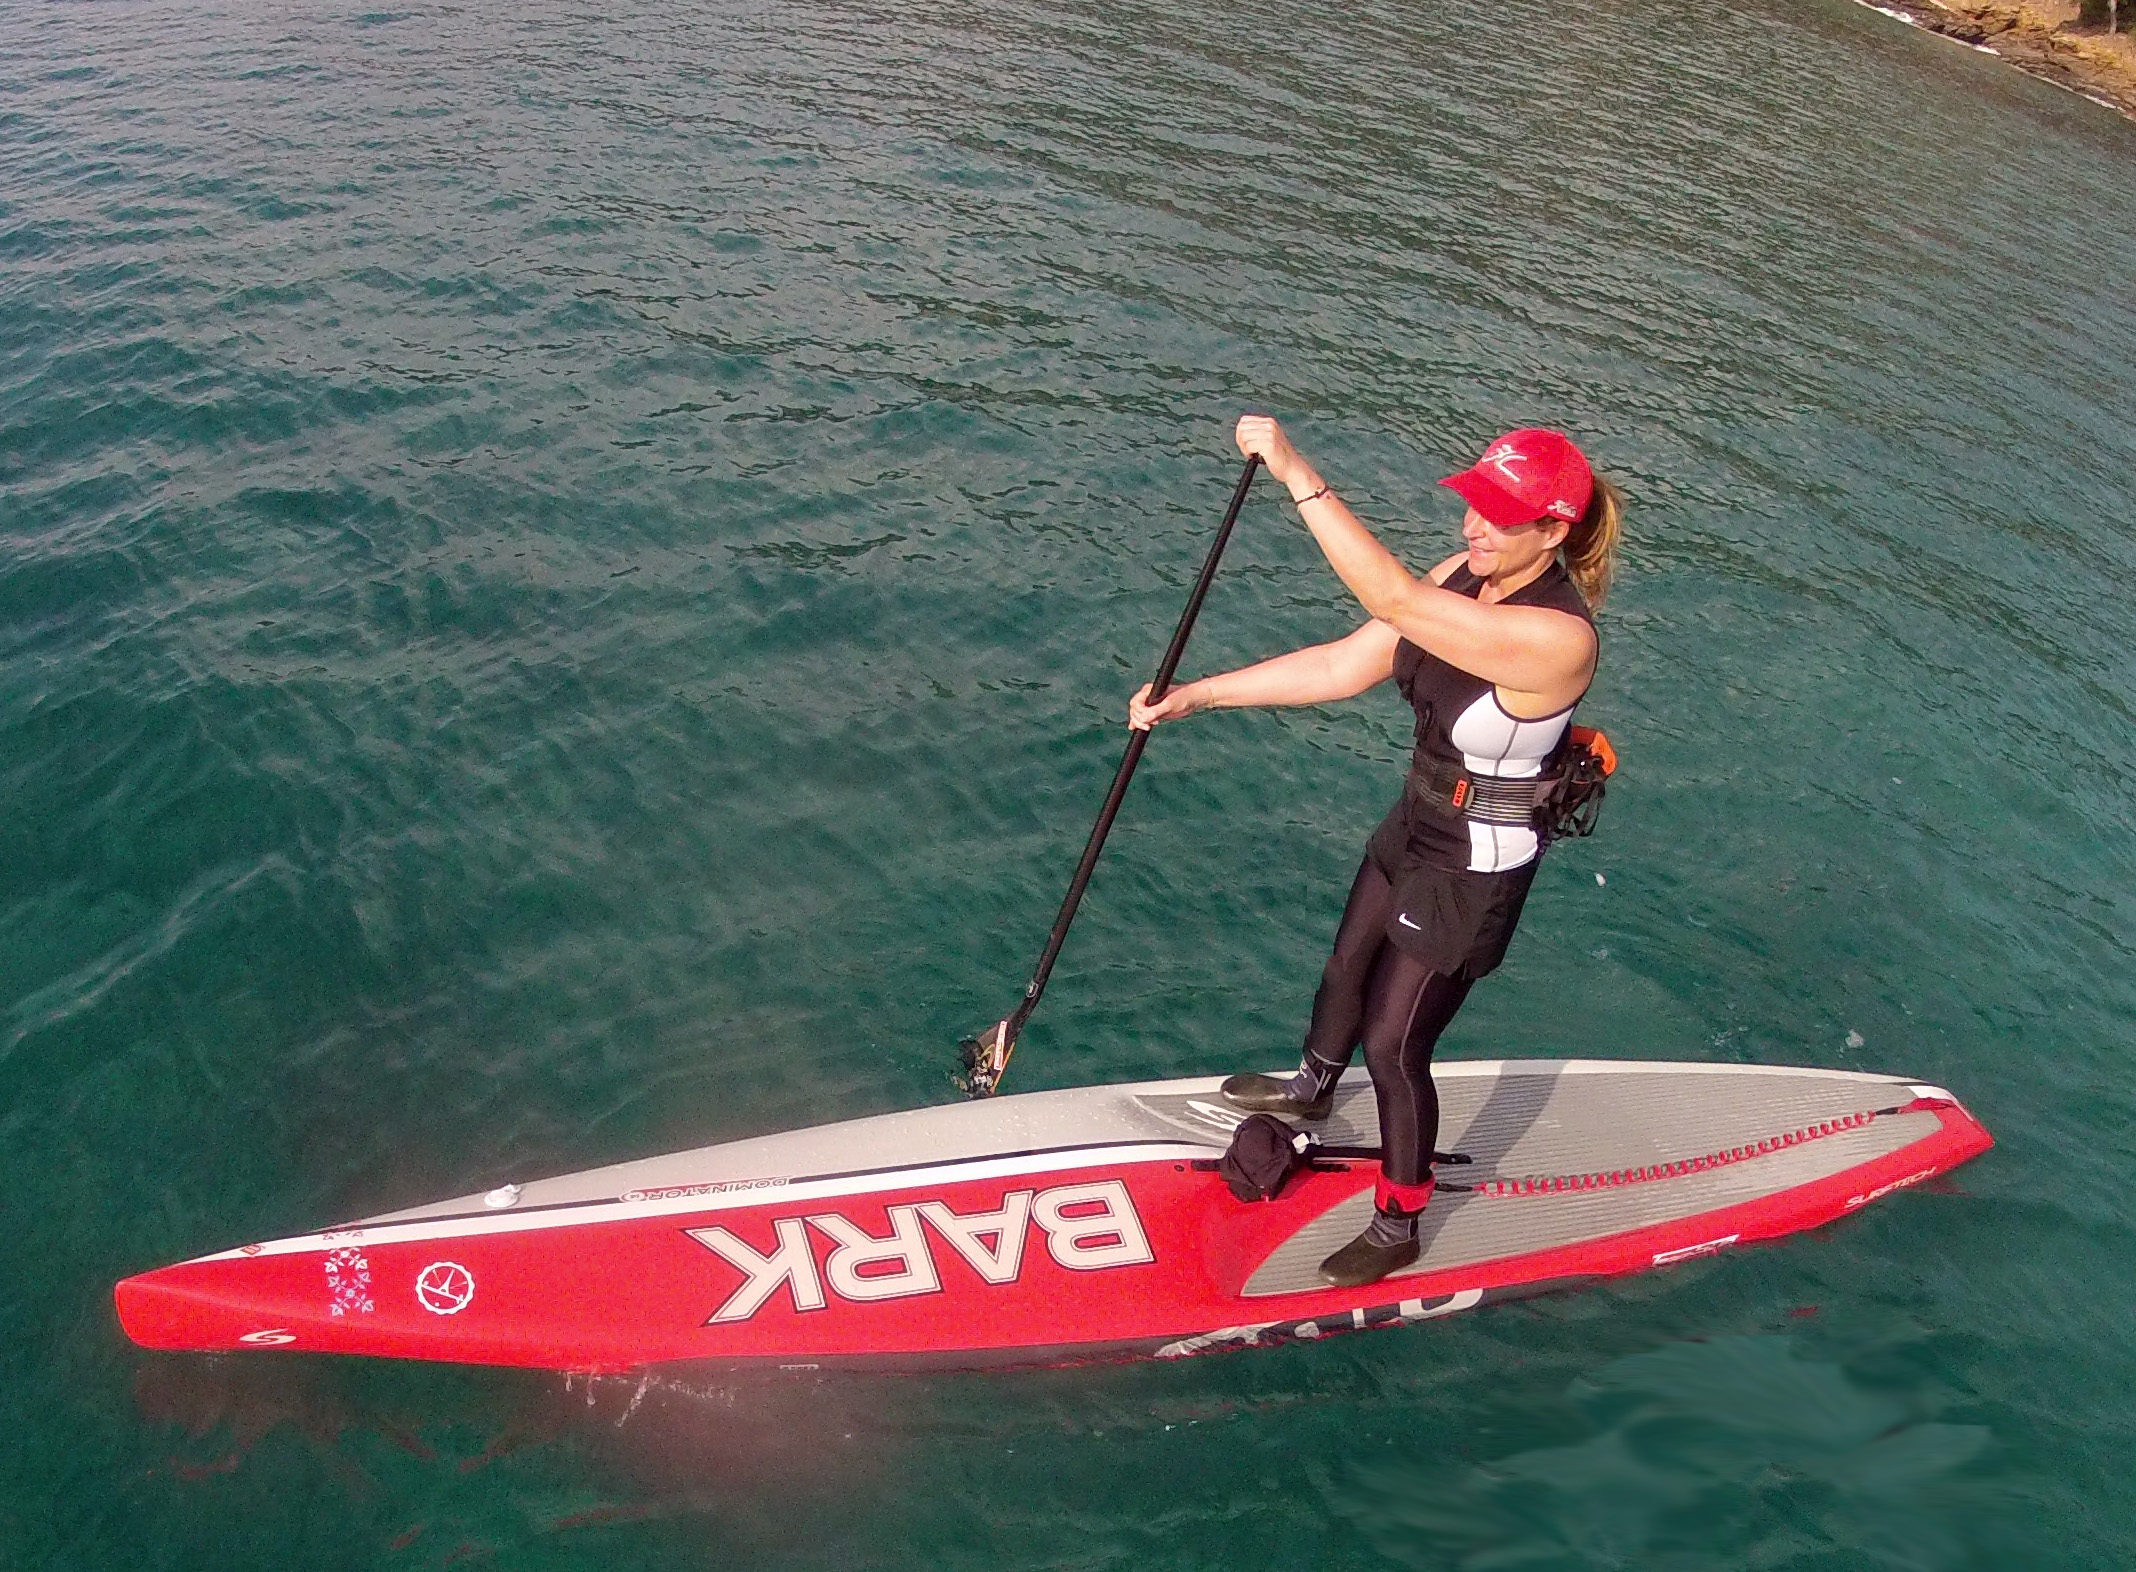 [VENDS] SUP stand up paddle race Surftech Bark Dominator 14 TBE  VQphr1